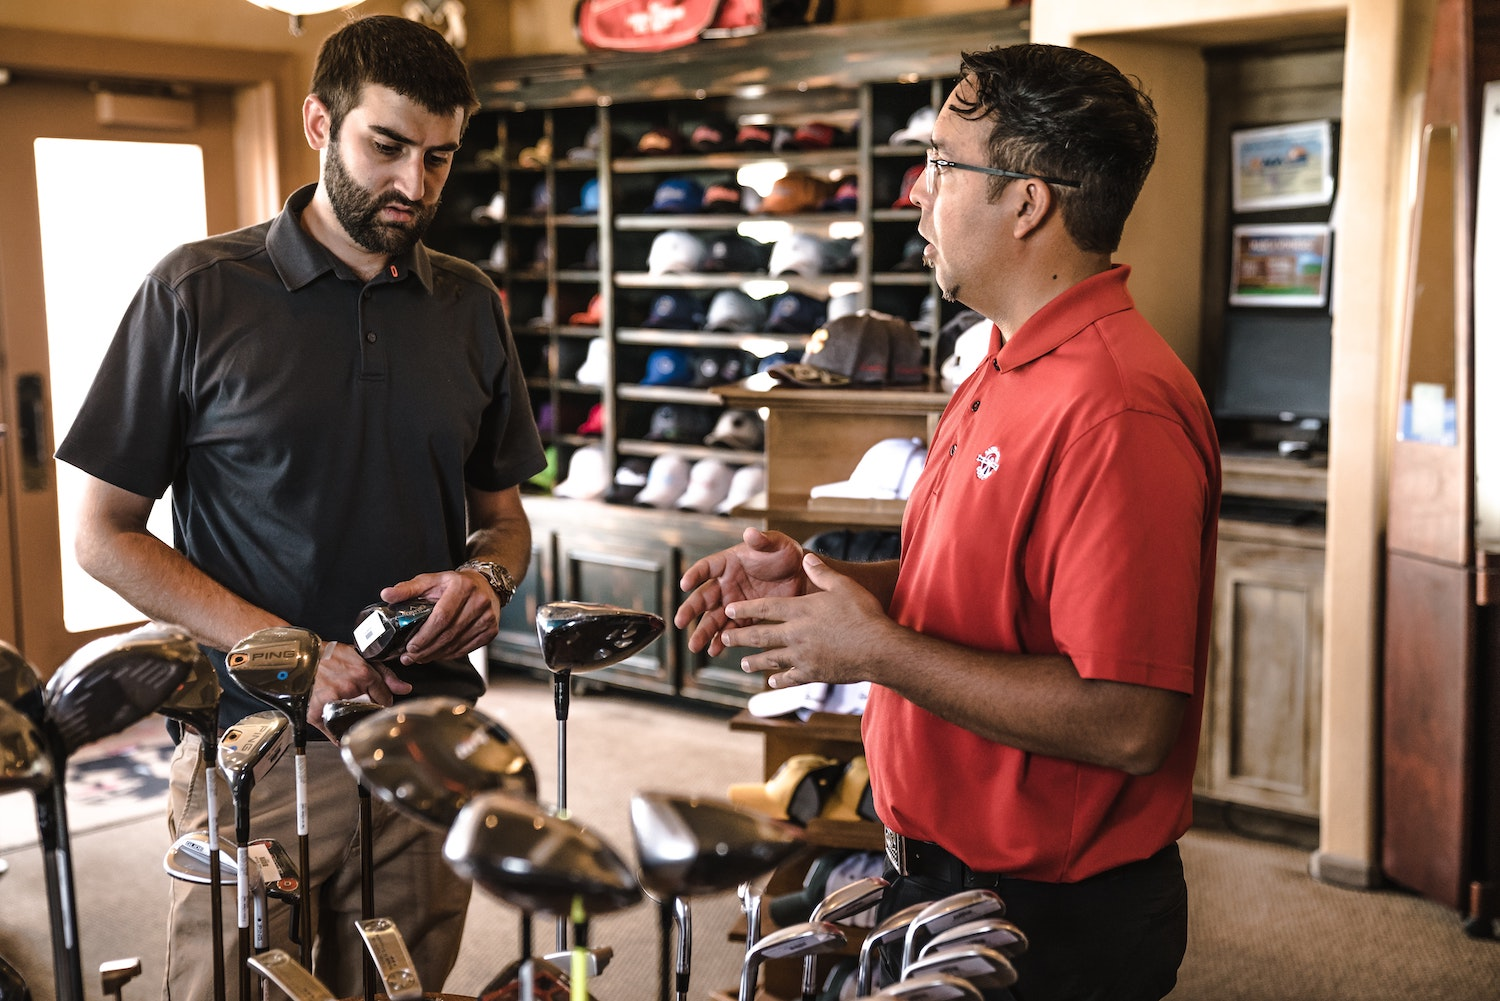 New To Golf? Five Things You Should Know Before Buying Your First Set Of Clubs